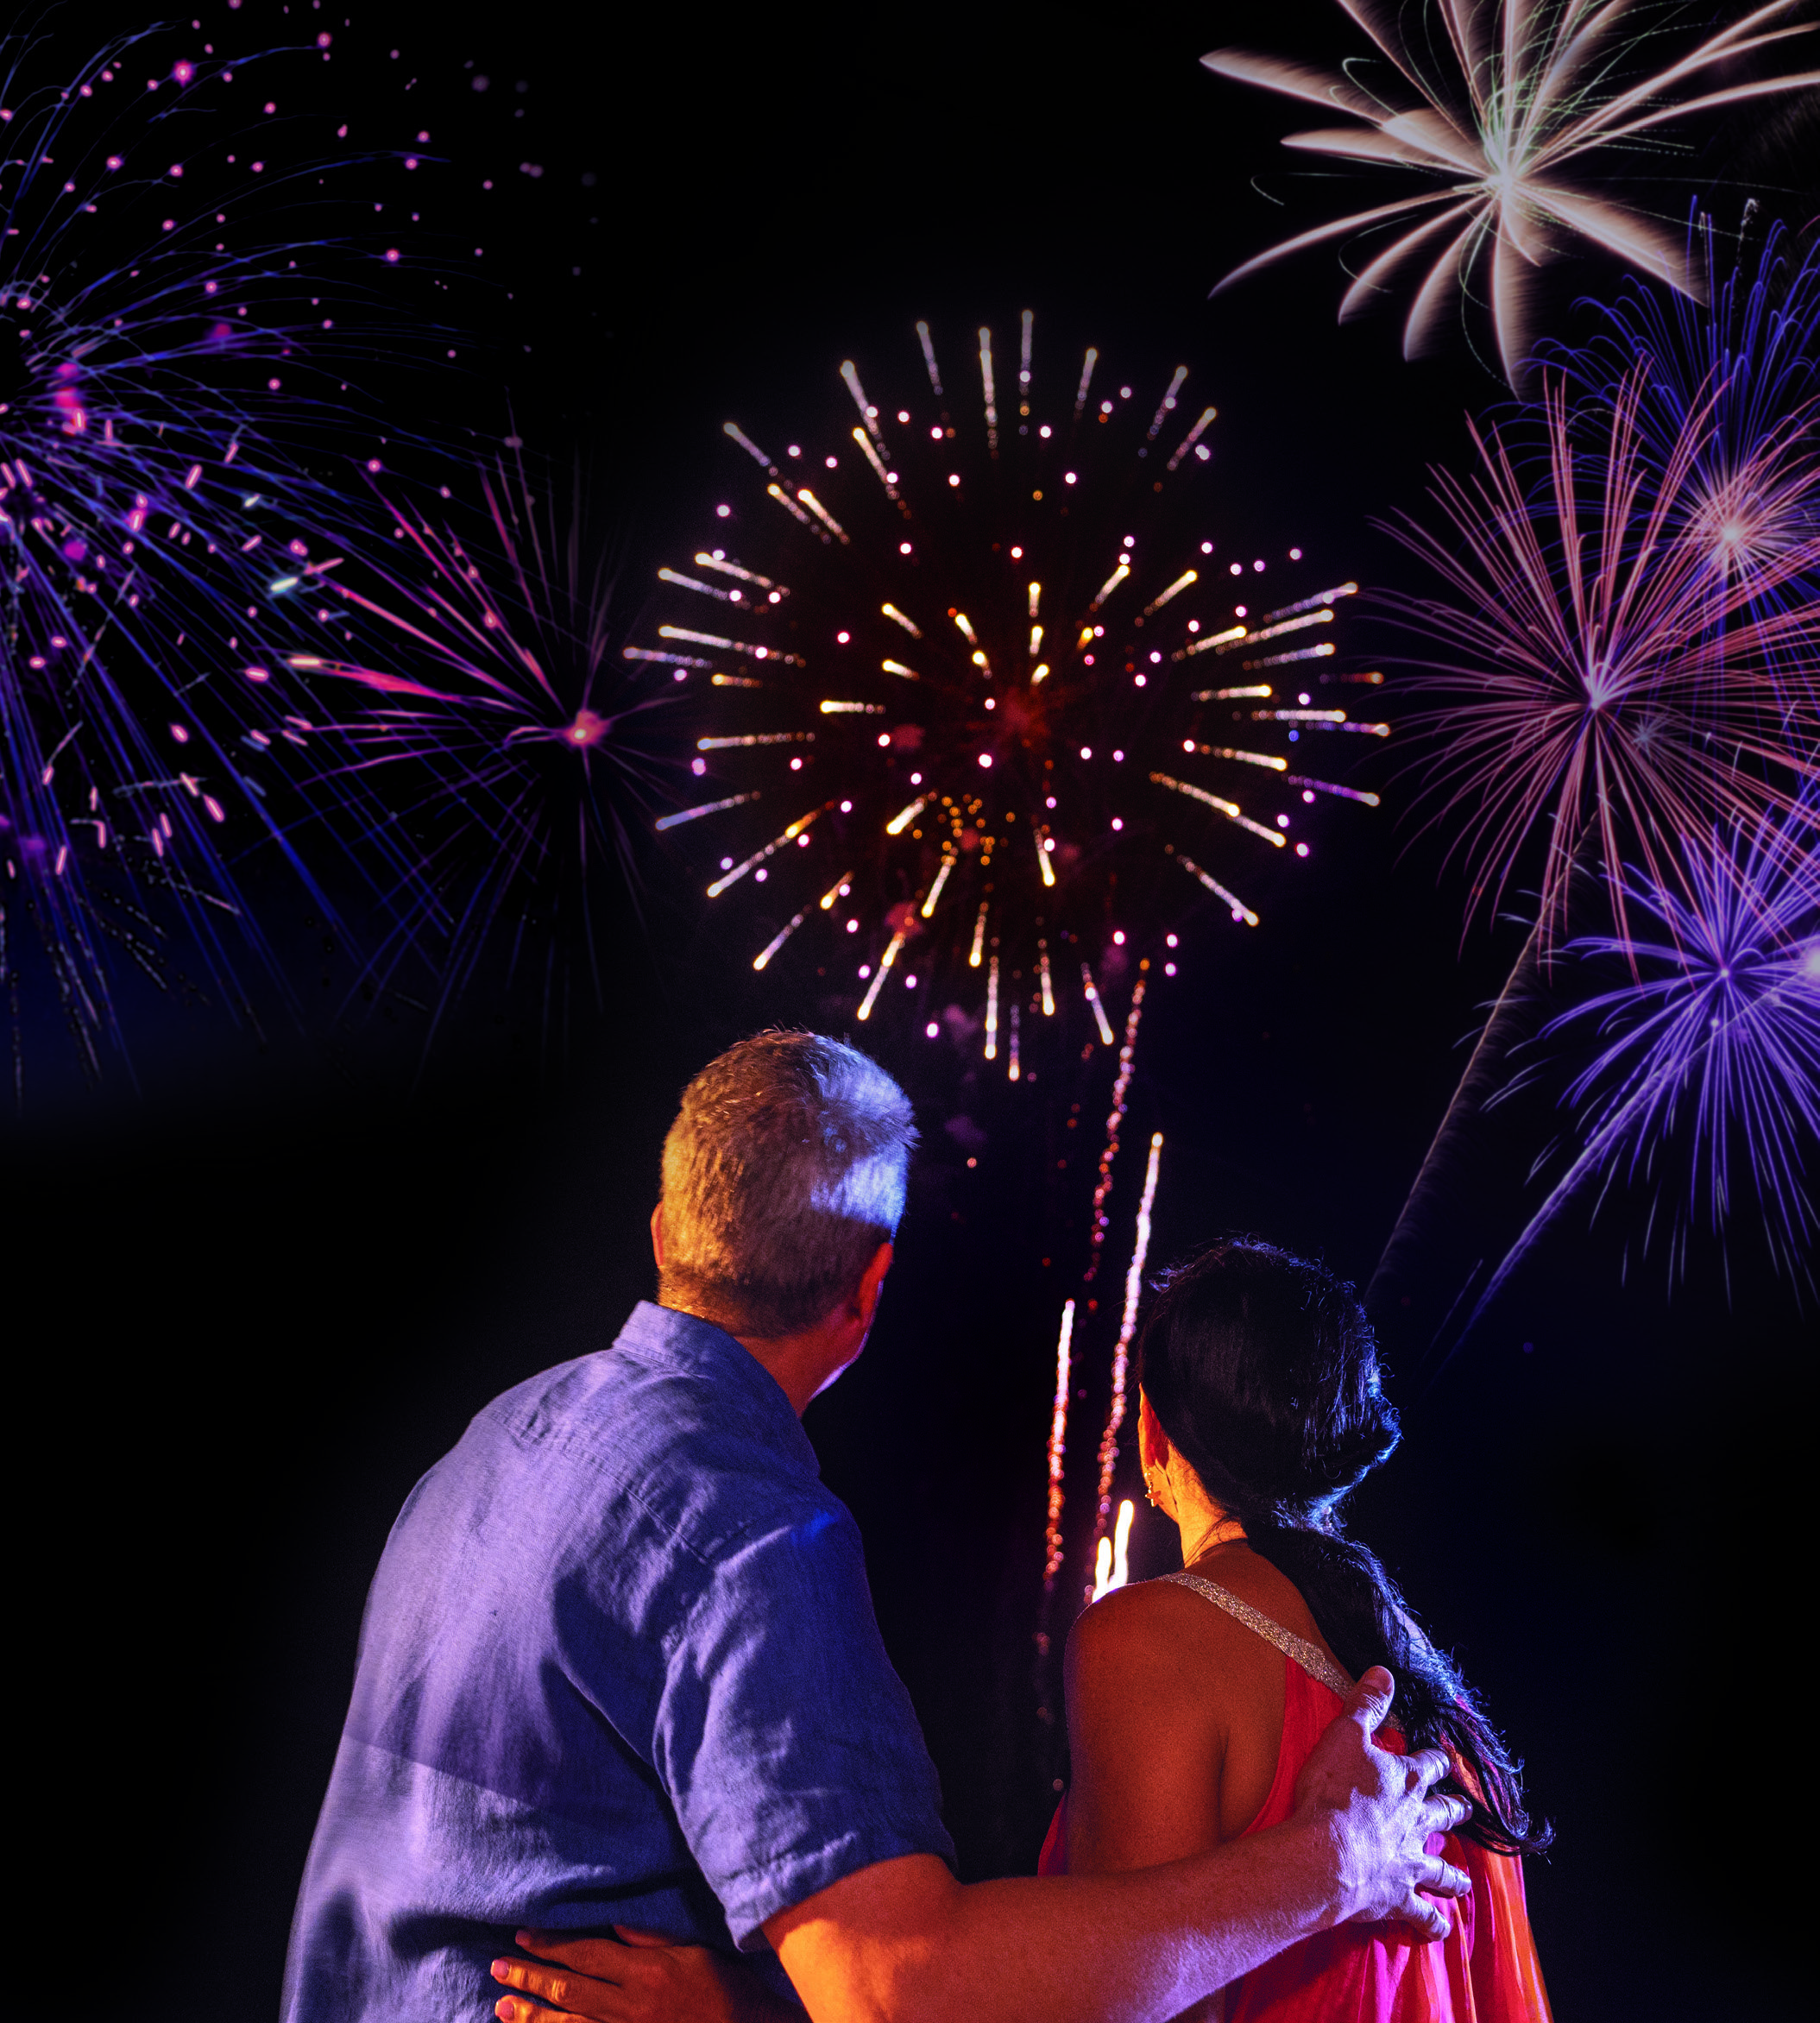 All Throughout The Summer South Padre Island Has Spectacular Fireworks Displays With Many Viewing Options Check Out Firew South Padre Island Island Fireworks